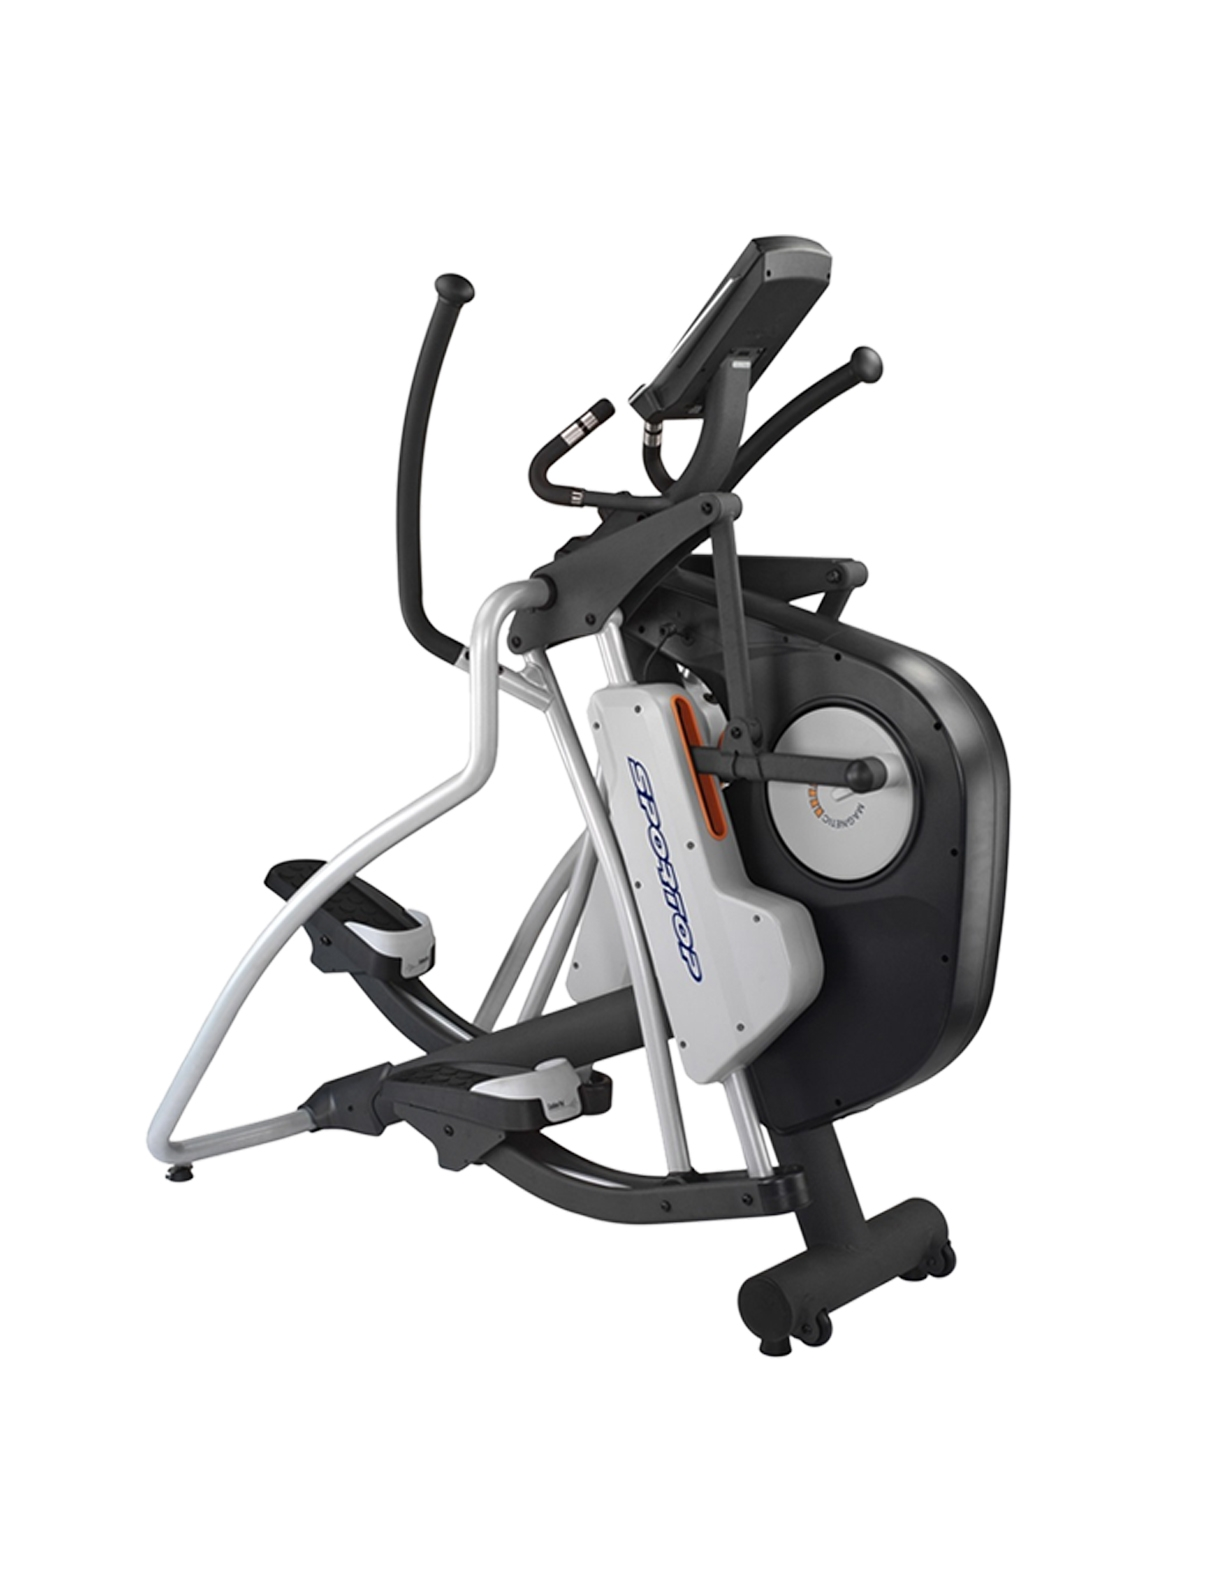 WBT E500 WHOLE BODY TRAINER